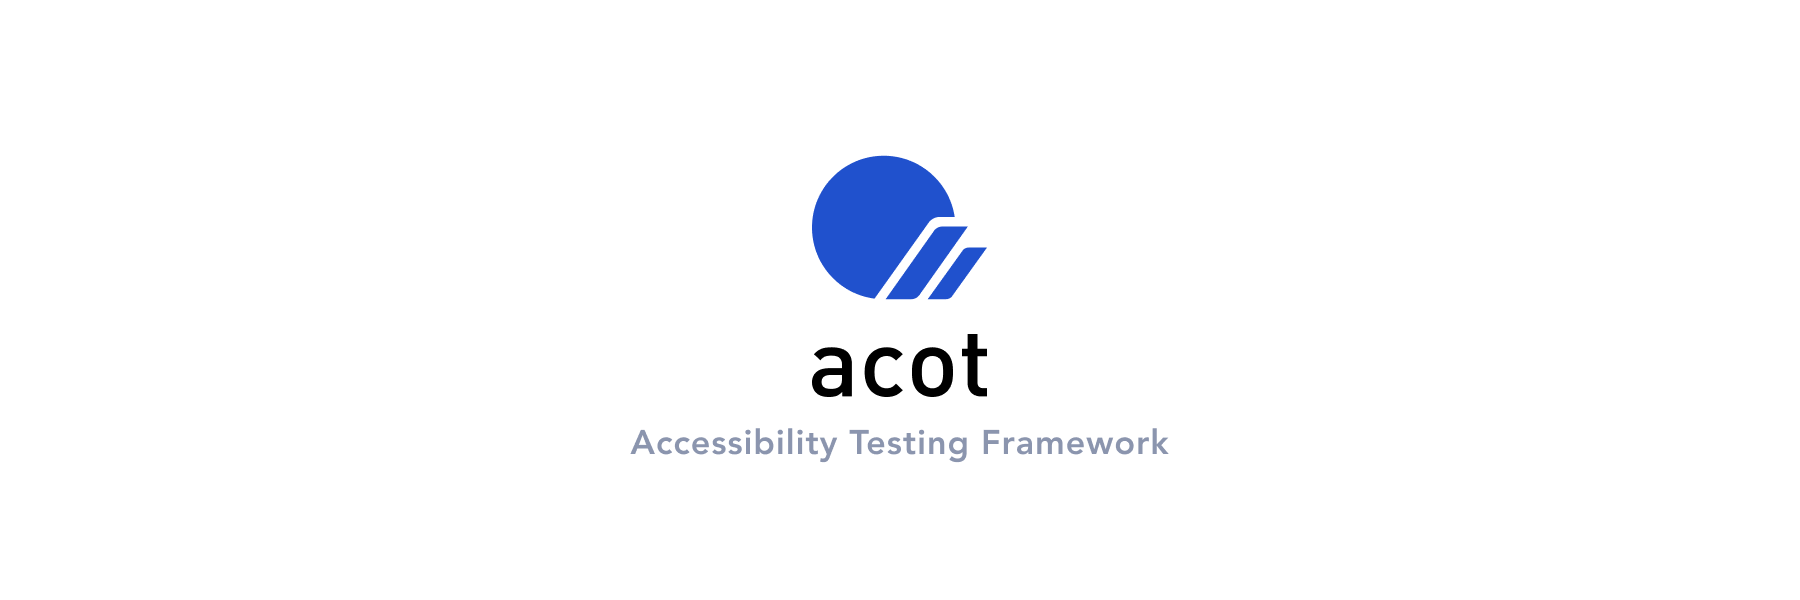 acot - Accessibility Testing Framework